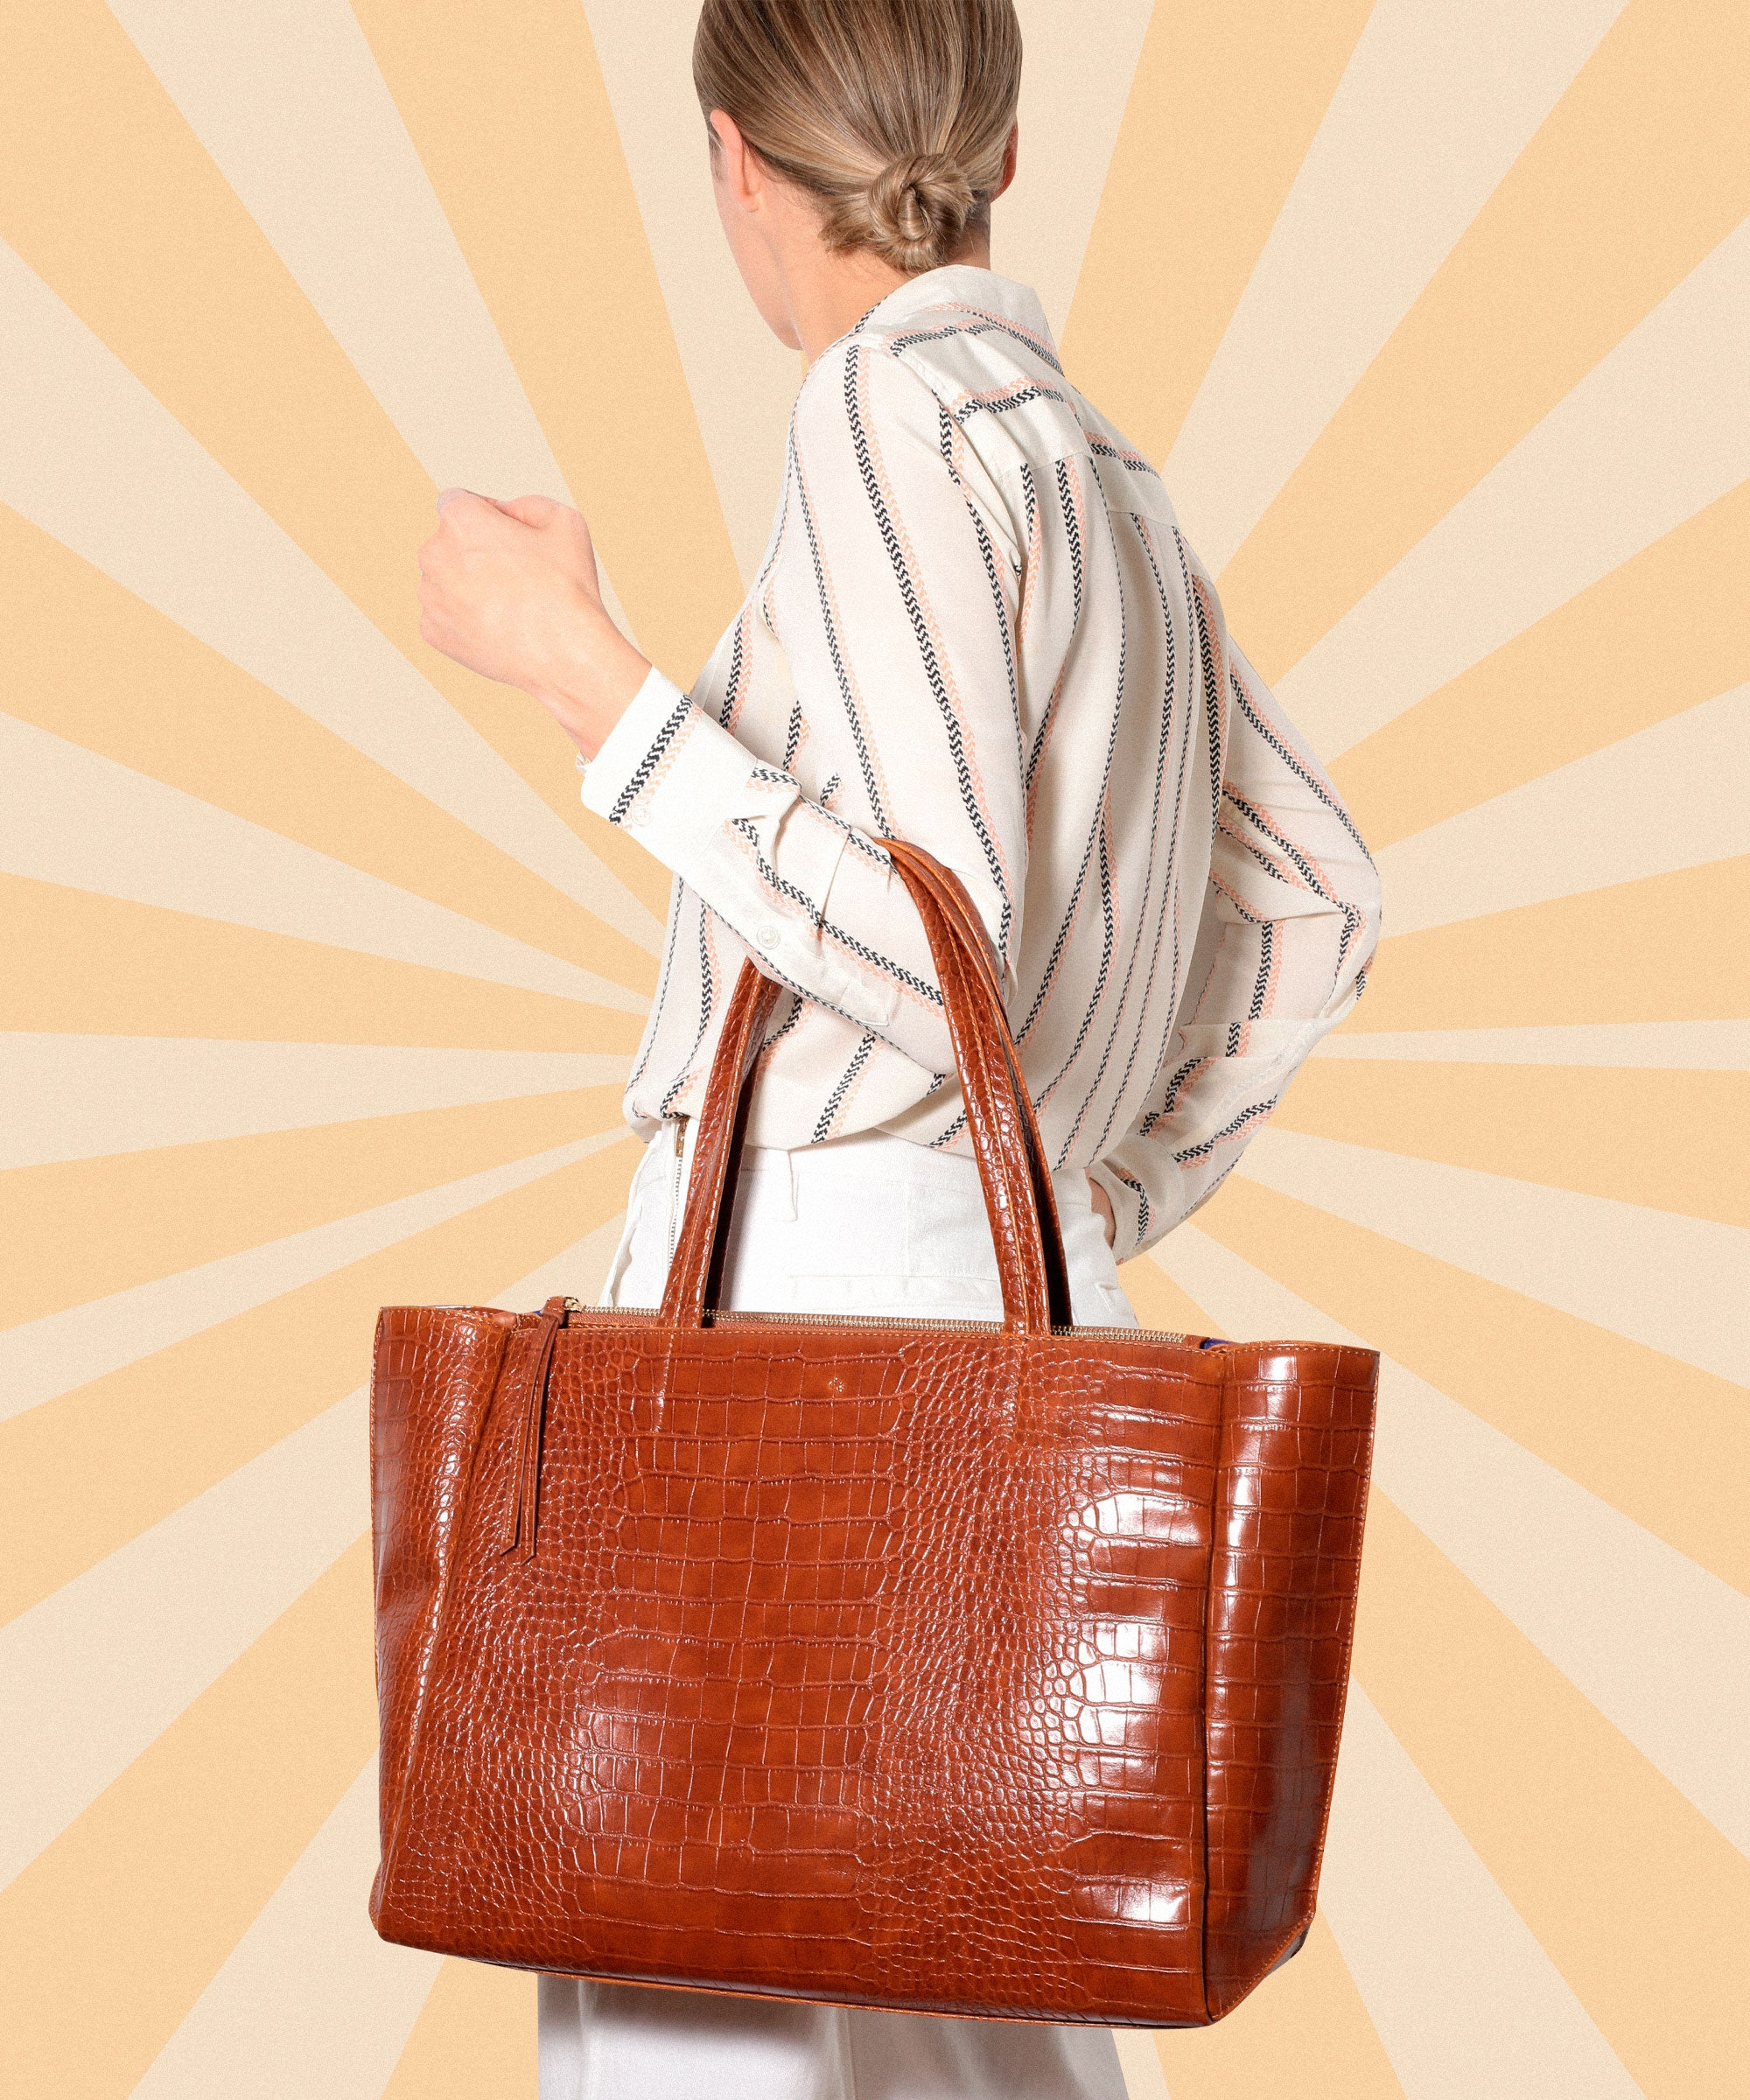 These Gwyneth-Approved Canadian Handbags Just Became A Whole Lot More Affordable